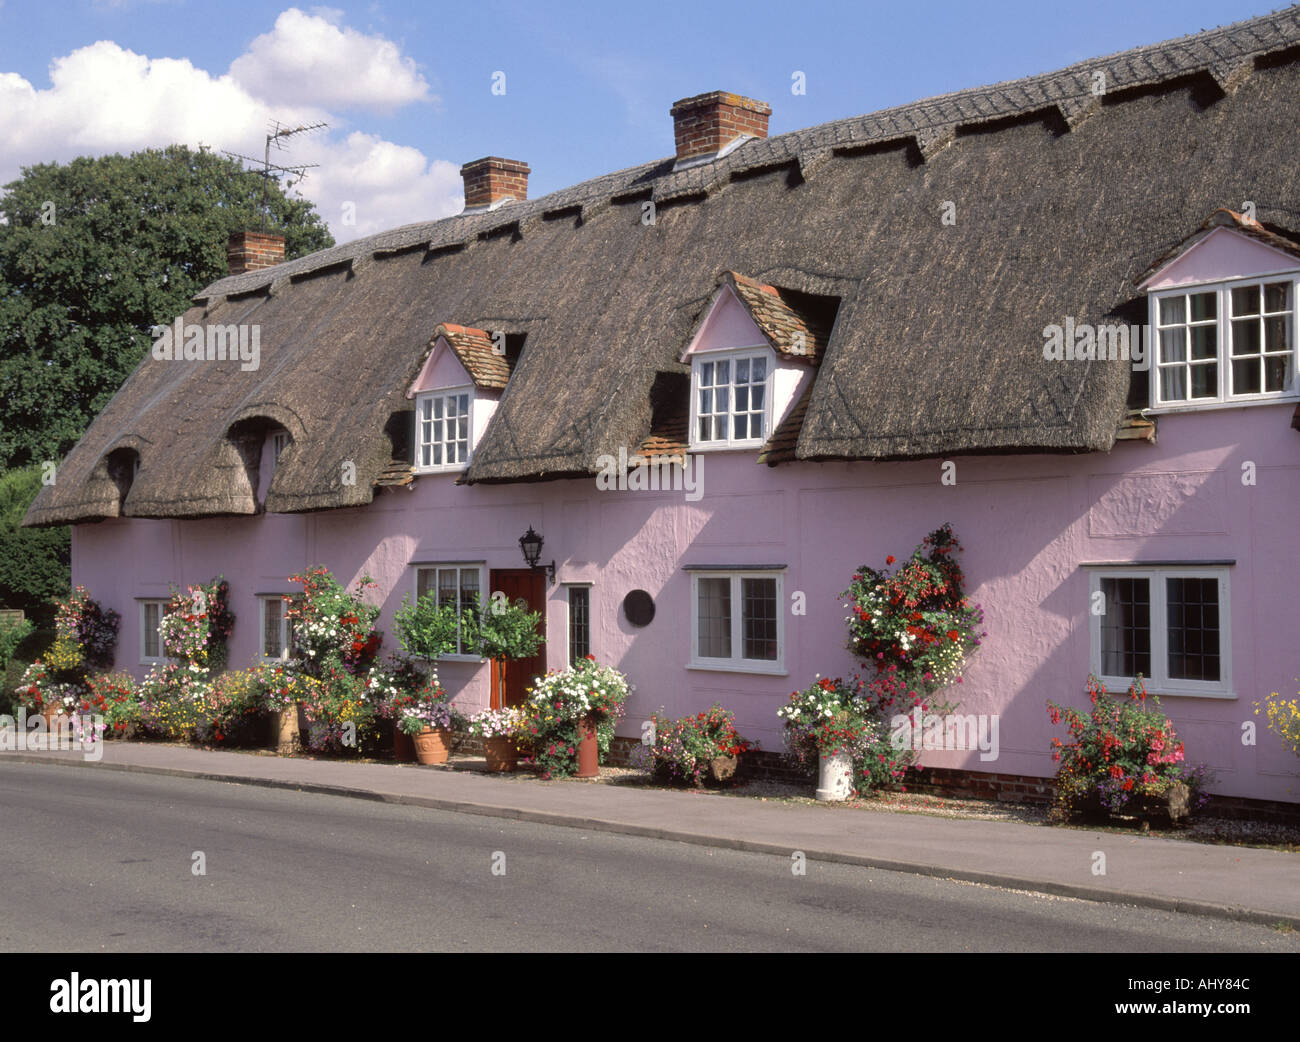 Pleshey thatched roof cottages with dormer windows and rendered colour washed walls (no front garden) - Stock Image